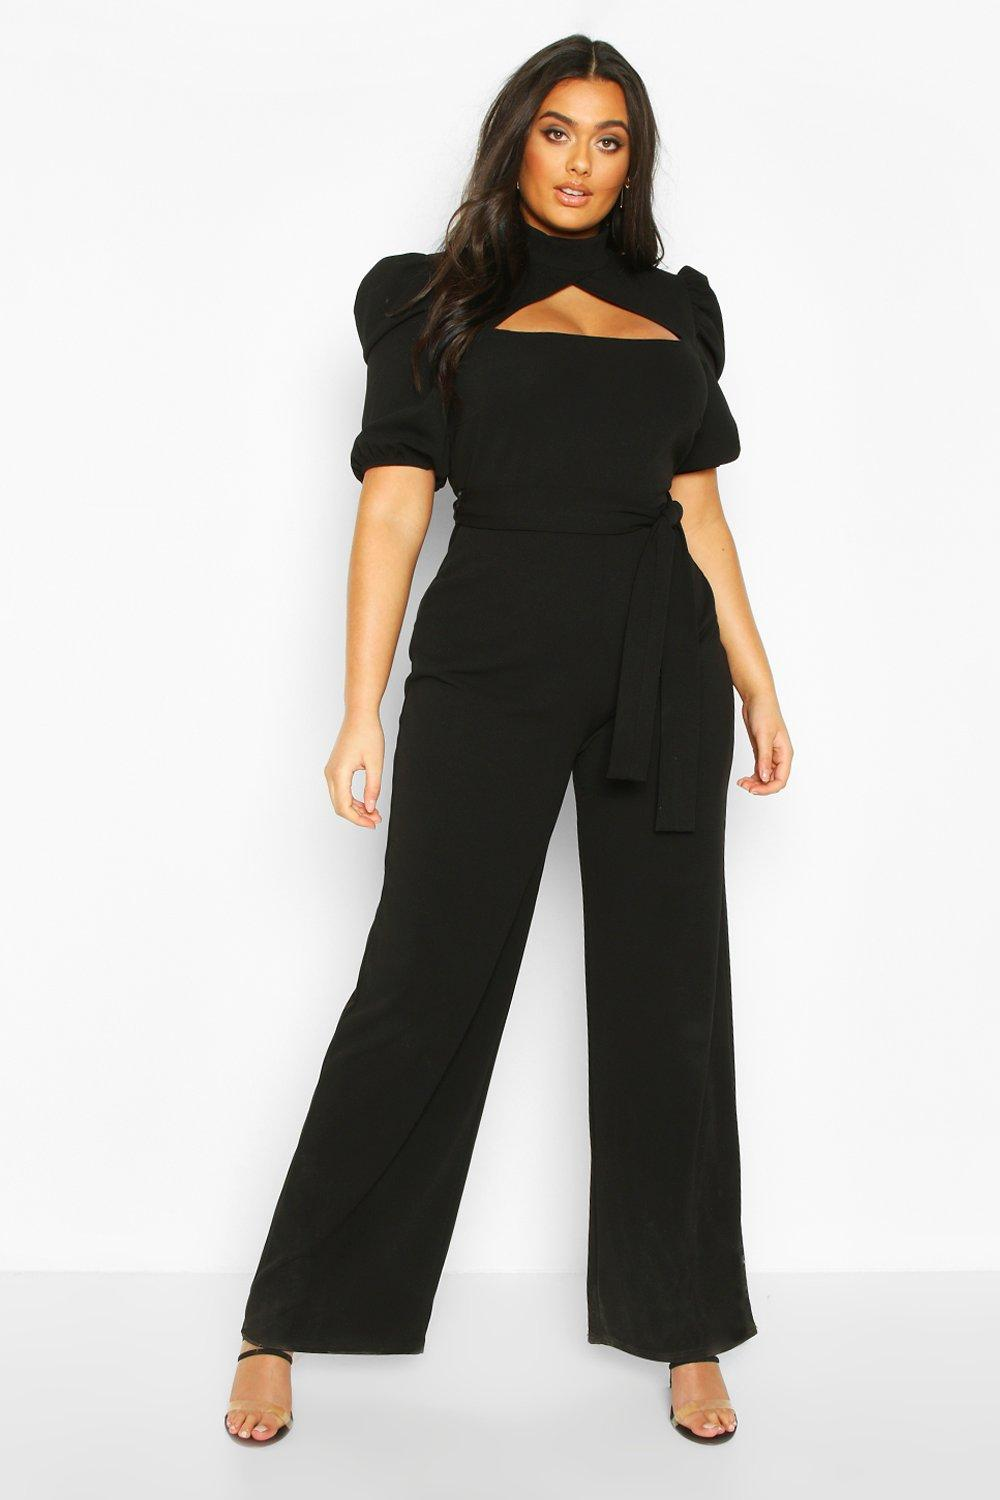 boohoo Womens Plus Choker Cut Out Puff Sleeve Jumpsuit - Black - 16, Black